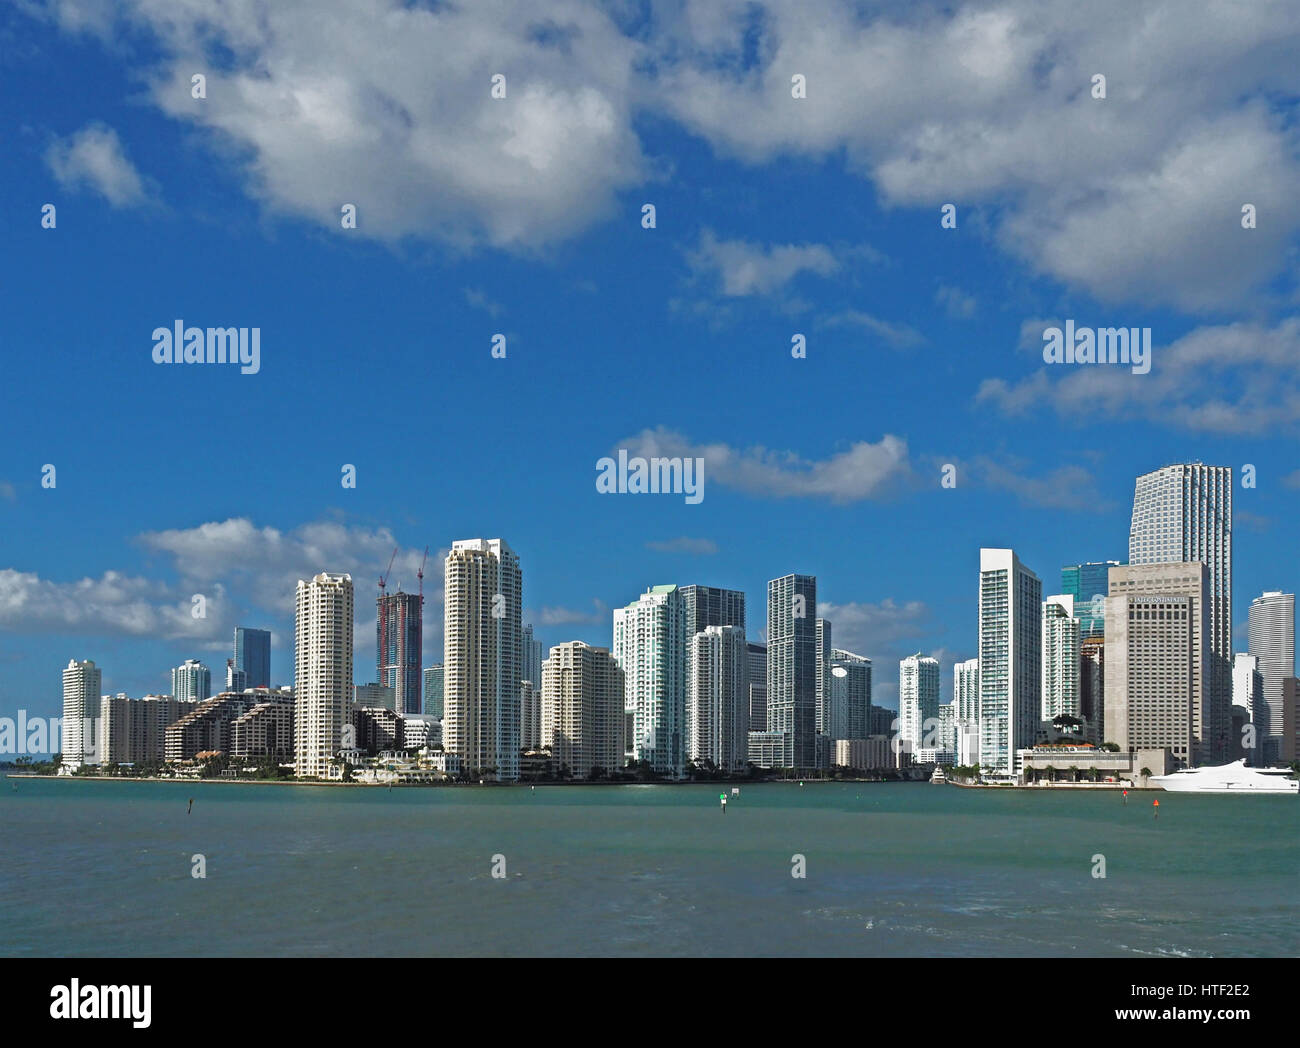 Miami downtown skyline. - Stock Image